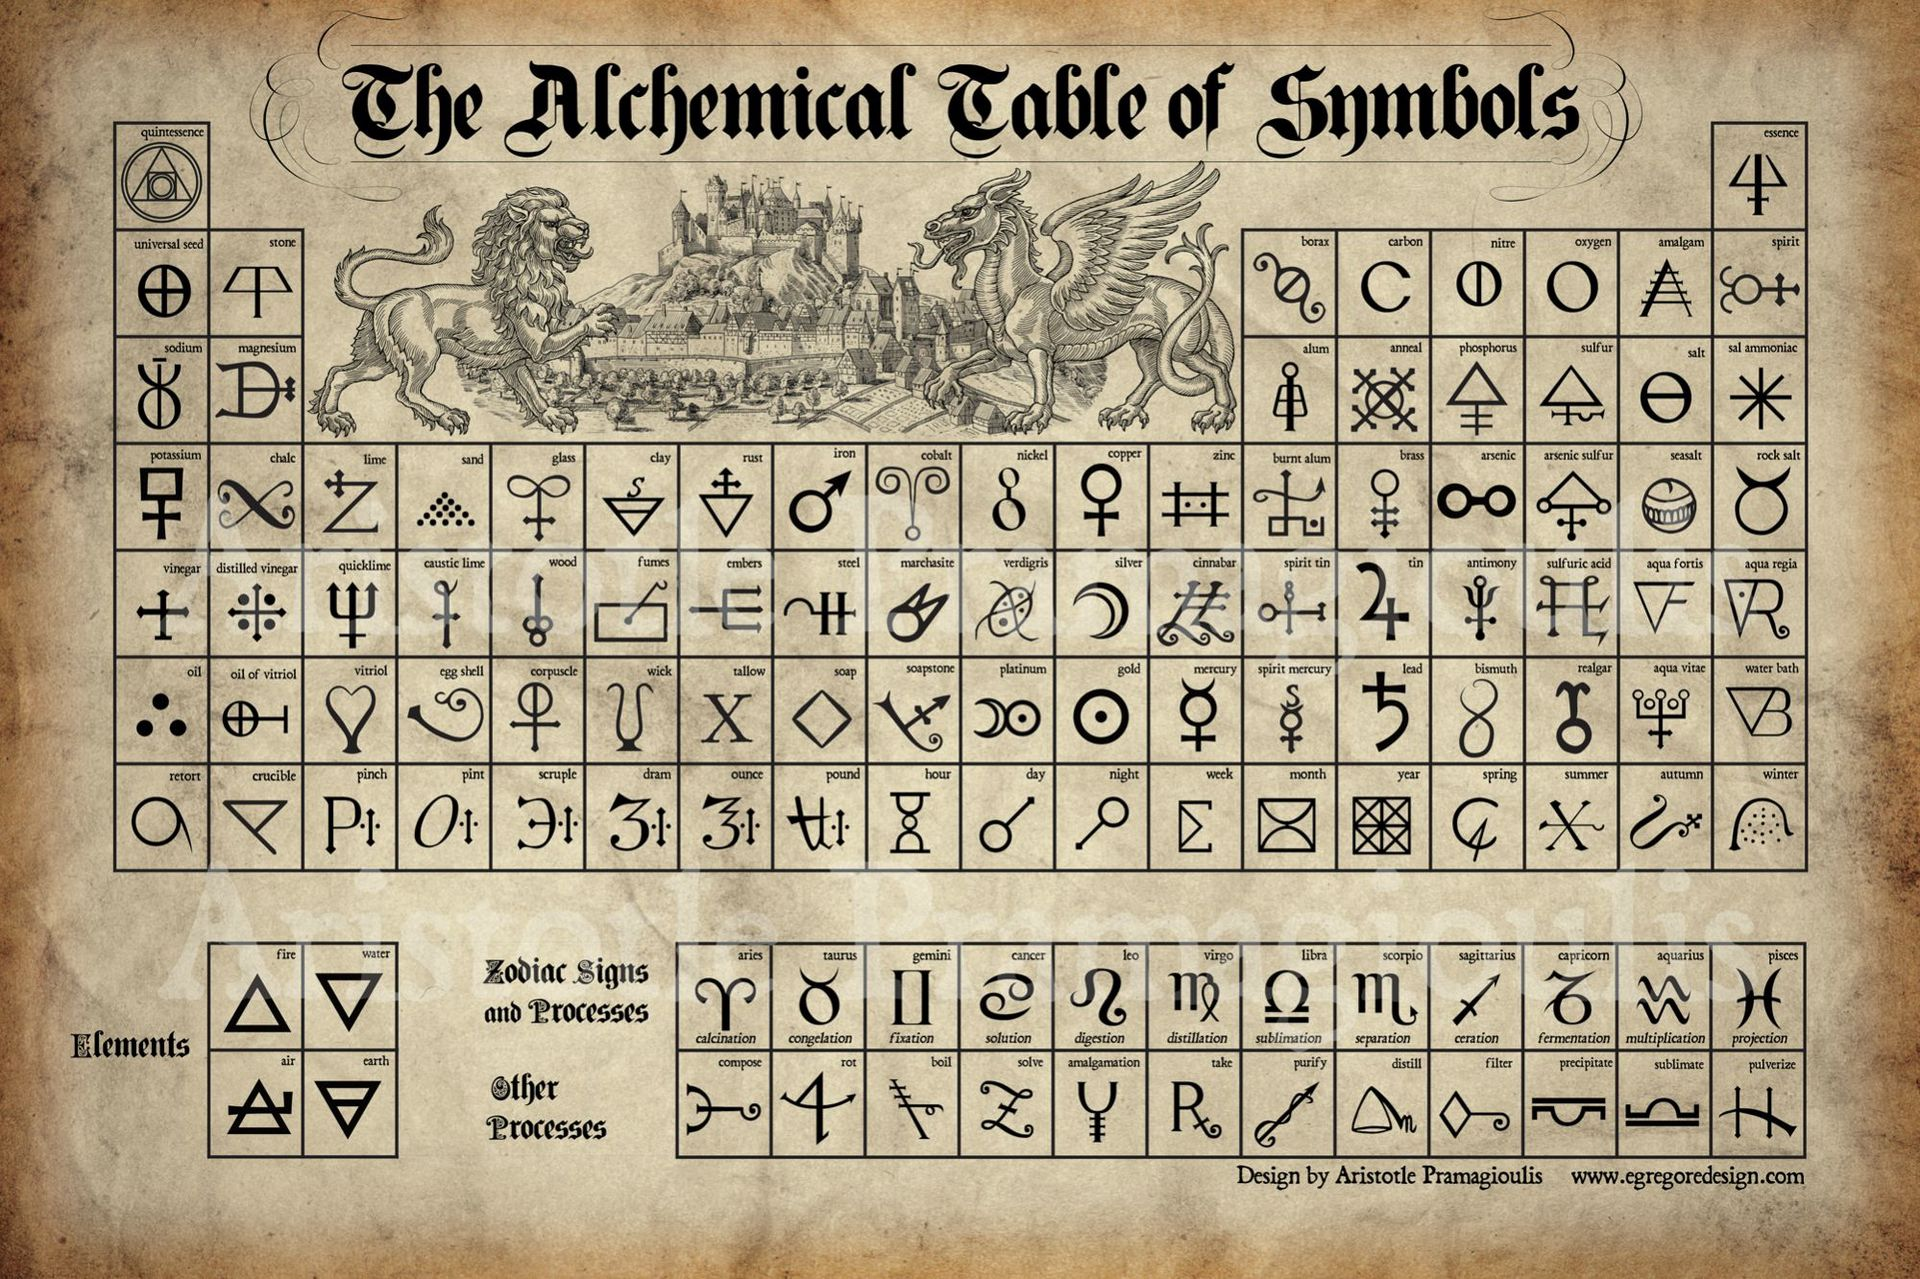 List of aztec symbols and meanings images symbol and sign ideas witches grimoire sigils symbols meanings wattpad buycottarizona buycottarizona